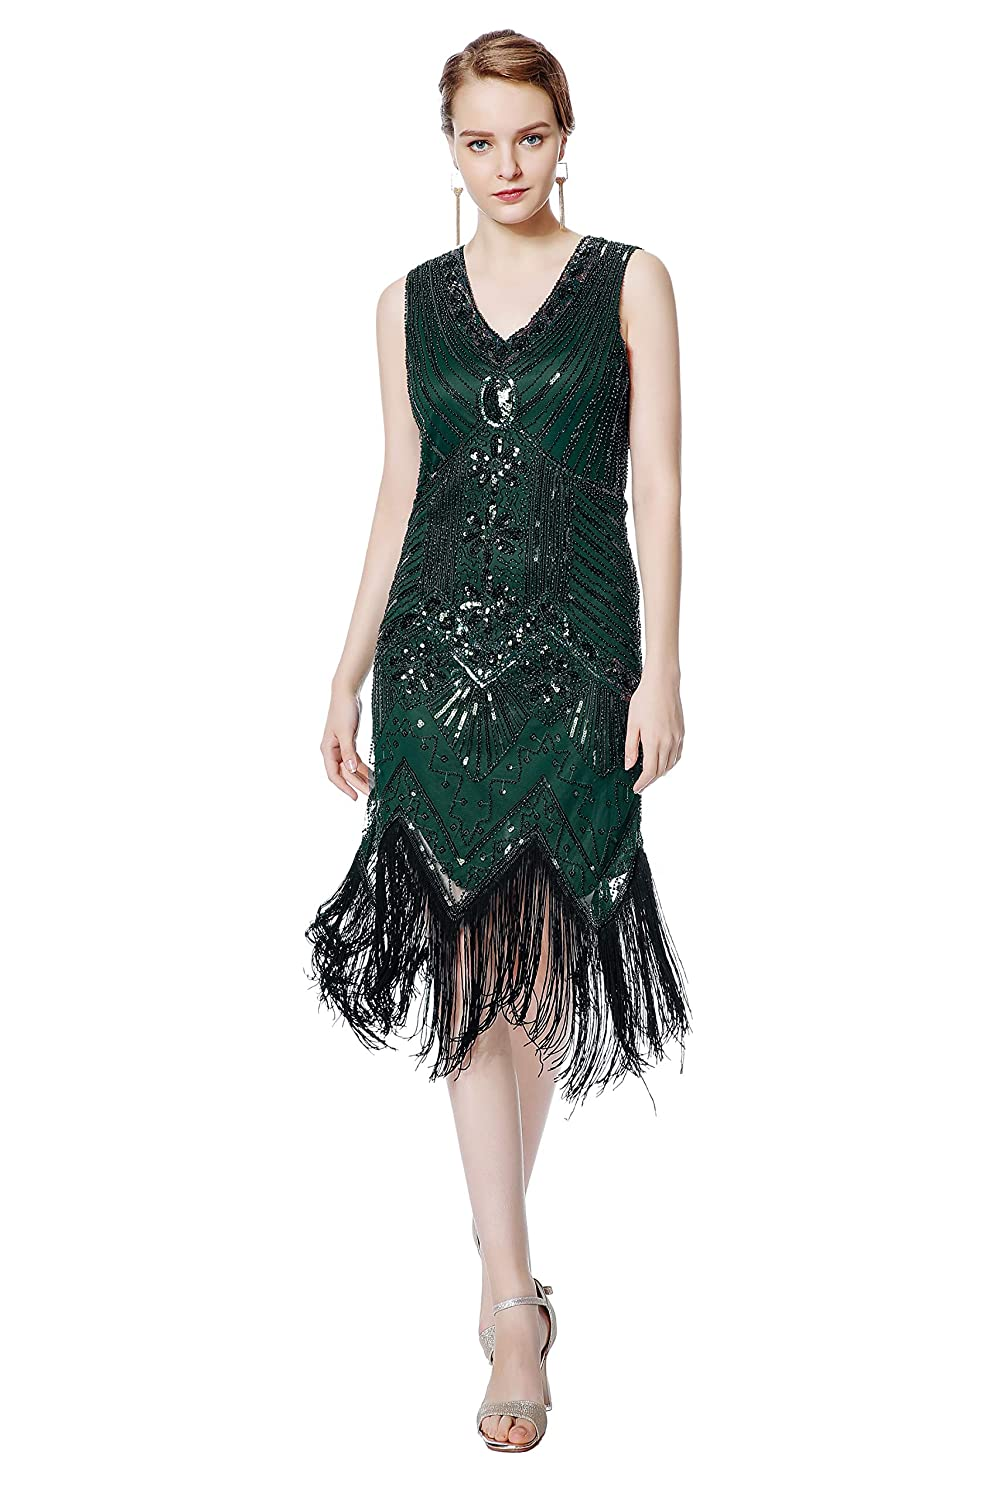 Great Gatsby Costumes –  Gatsby Costumes & Dresses Metme Womens Flapper Dress 1920s V Neck Beaded Fringed Gatsby Theme Roaring 20s Dress for Prom $50.99 AT vintagedancer.com